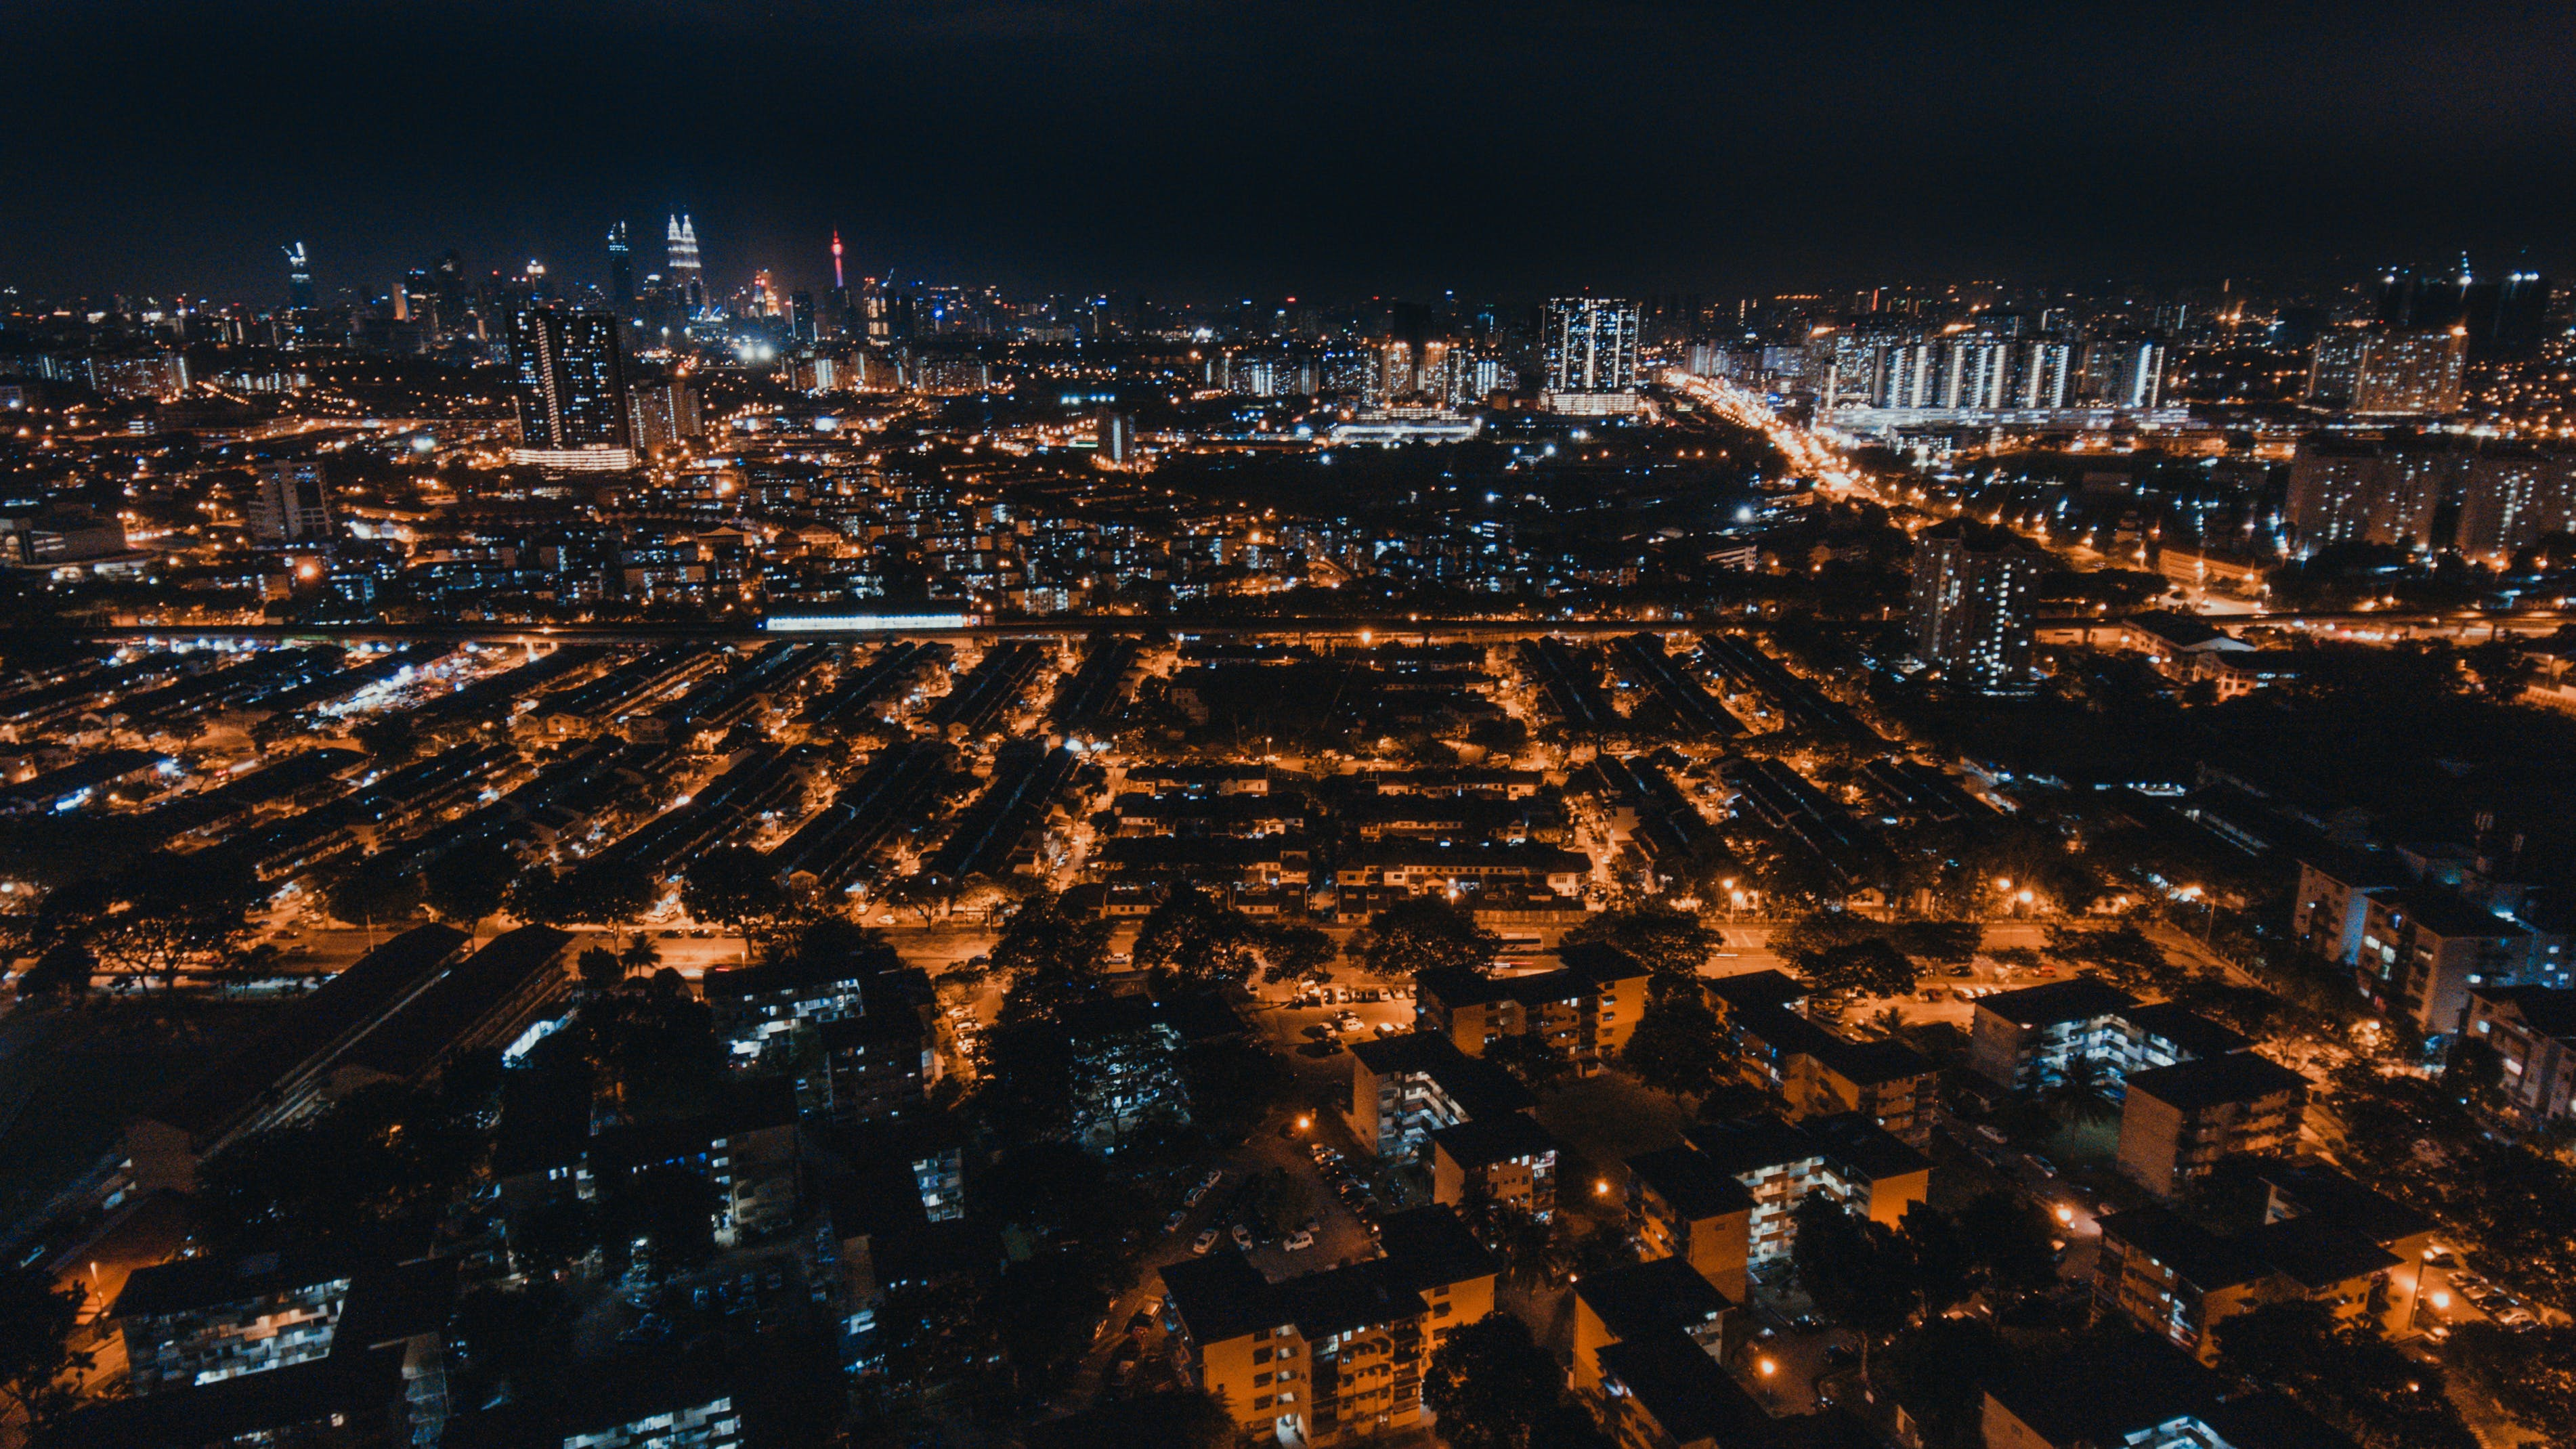 Aerial Photo of City Buildings during Night Time